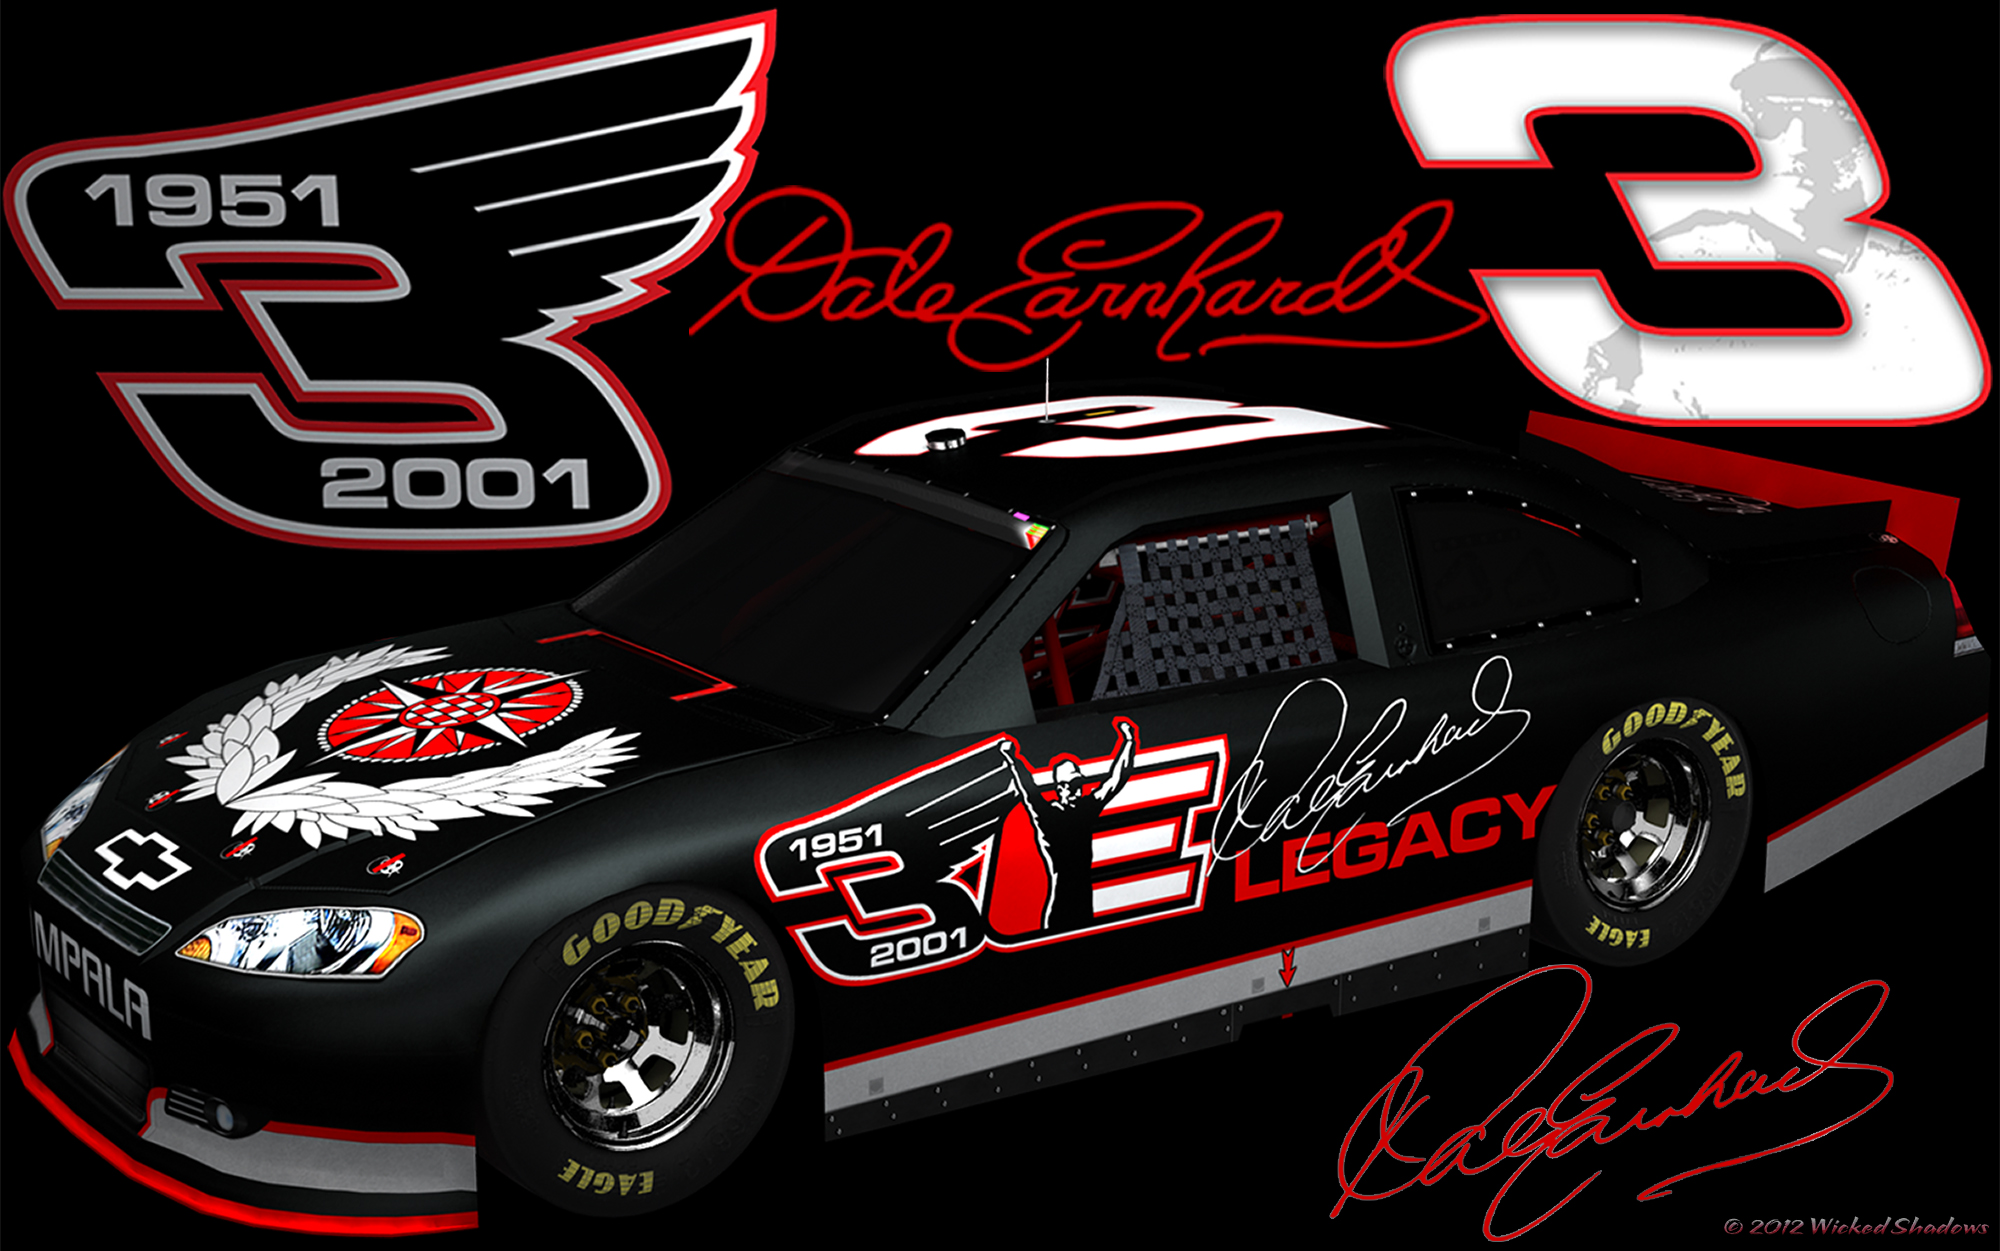 16 Best Dale Earnhardt Sr 3 Images On Pinterest: Dale Earnhardt And Tribute On Pinterest